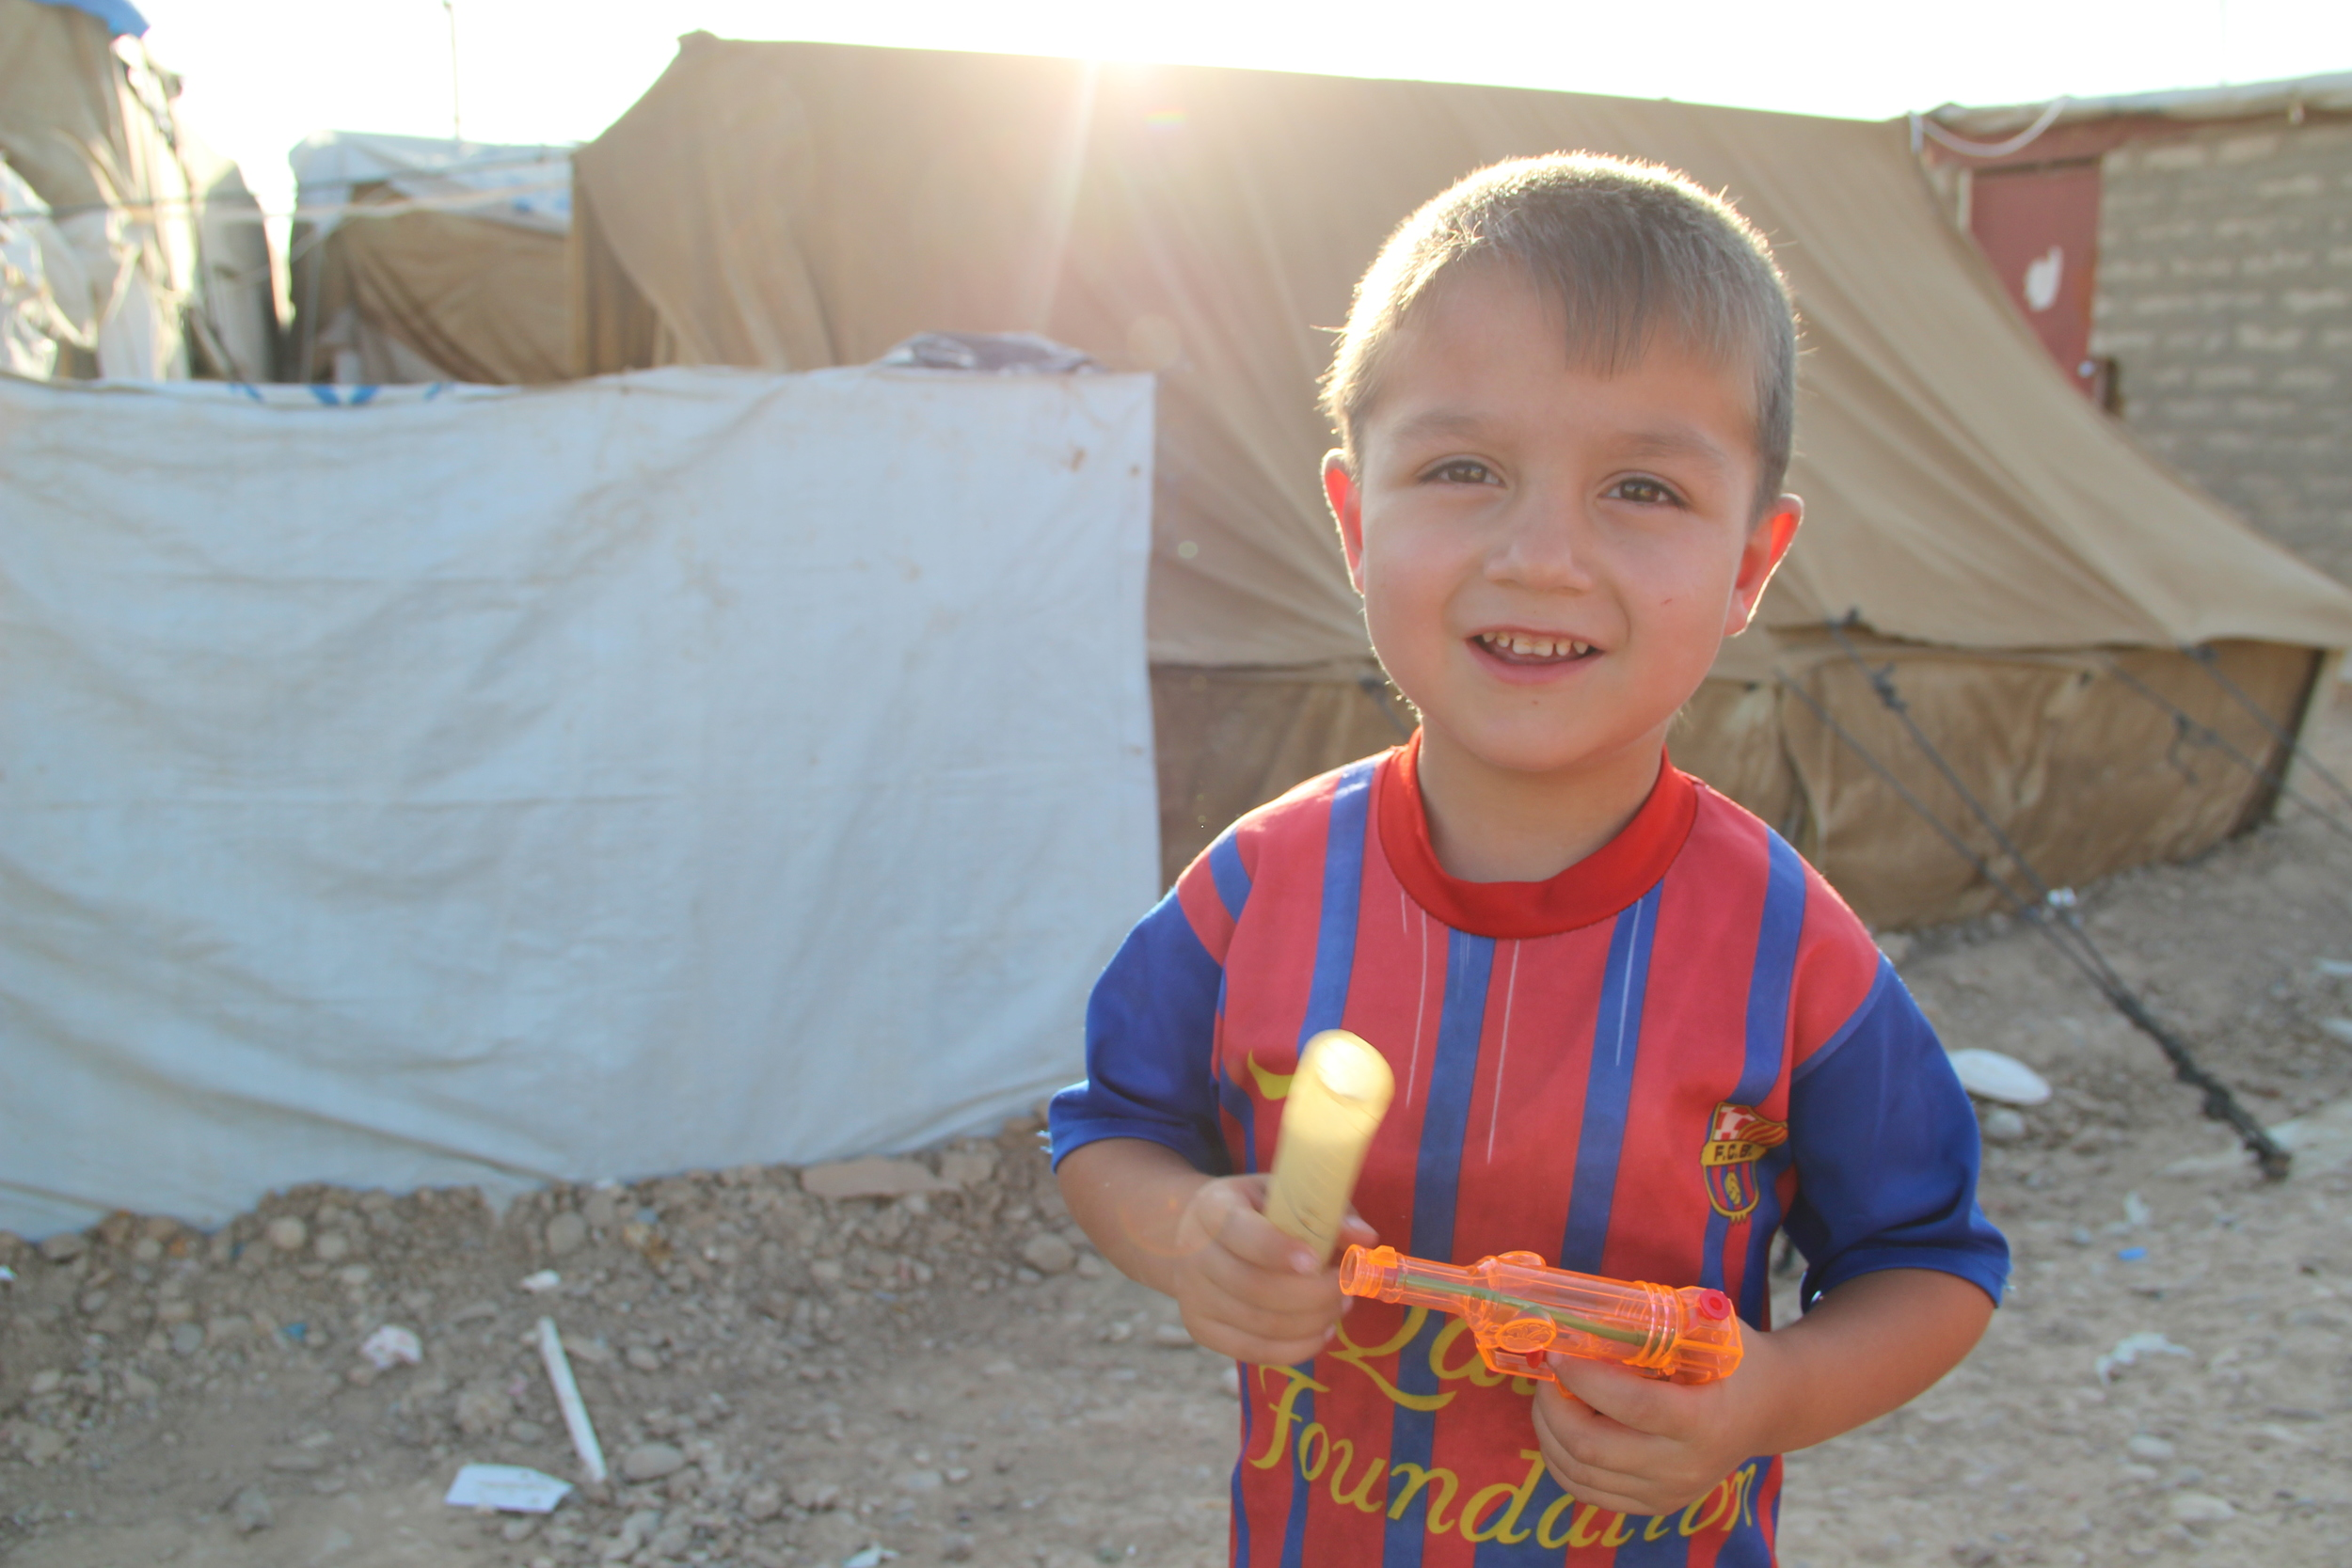 A young child wears a Barcelona jersey, Domiz refugee camp / For the Iraq mission of the International Organization for Migration